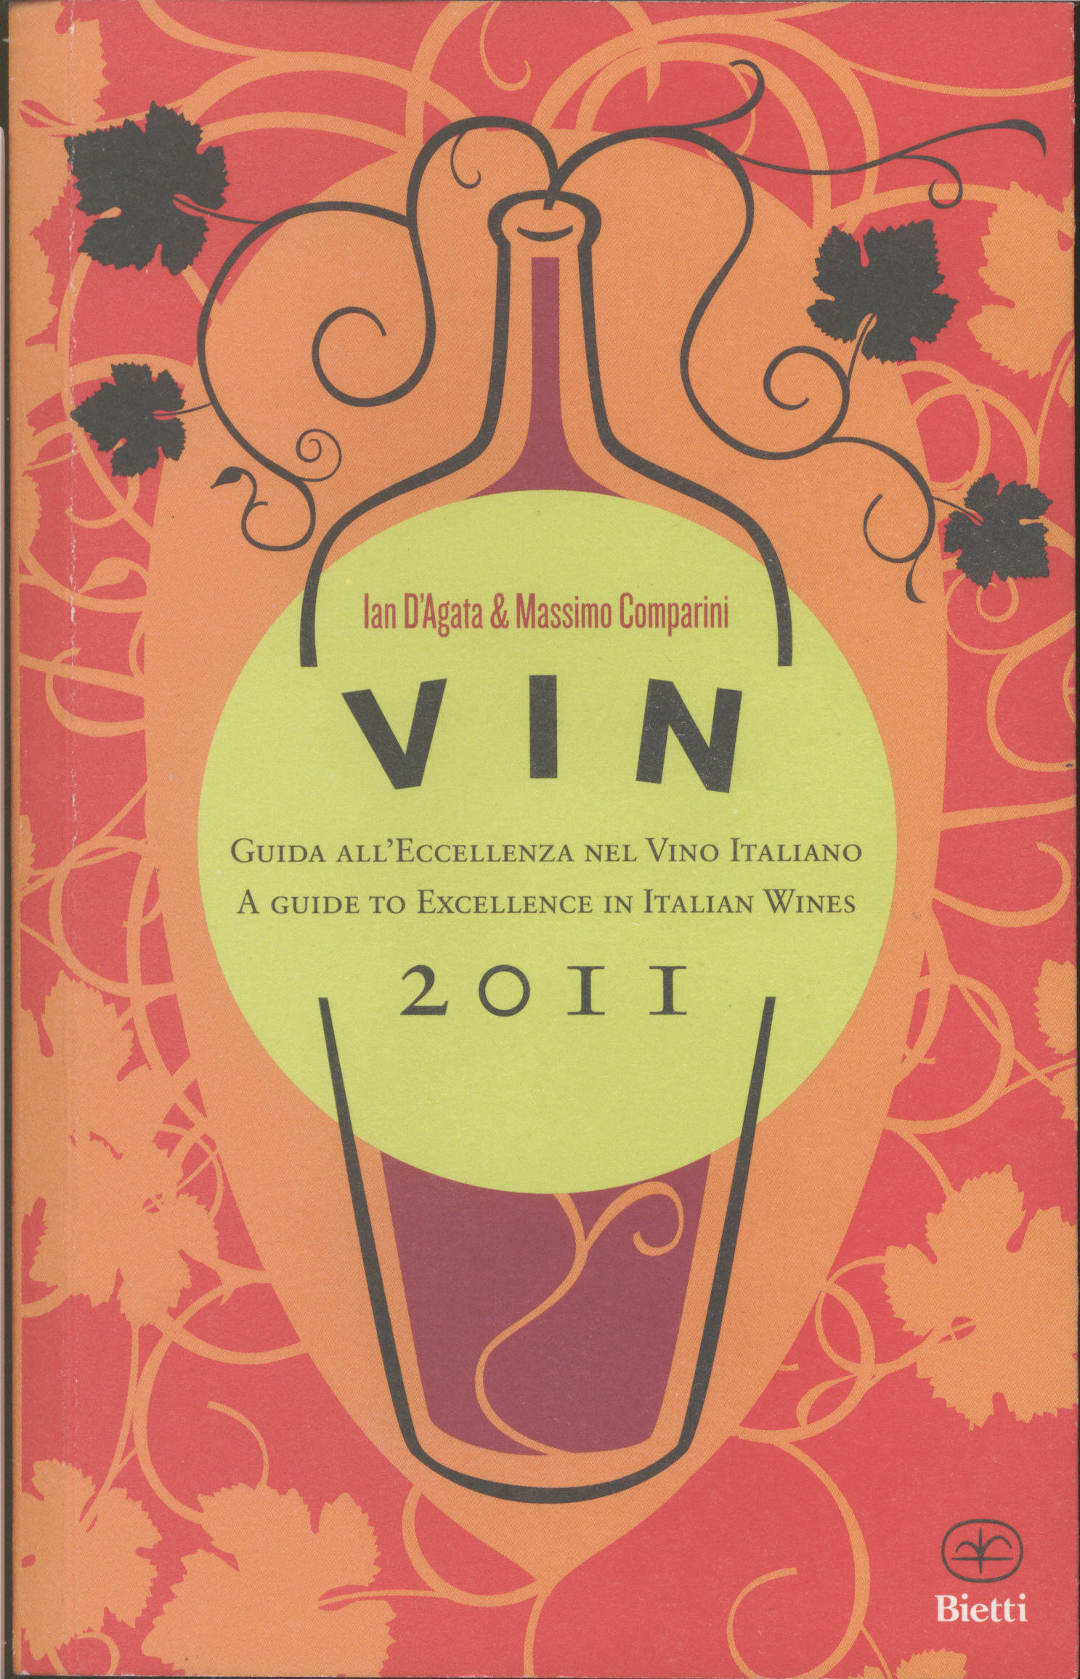 Balciana 2008 - The Best 150 Wines of Italy (6th place in the general rating